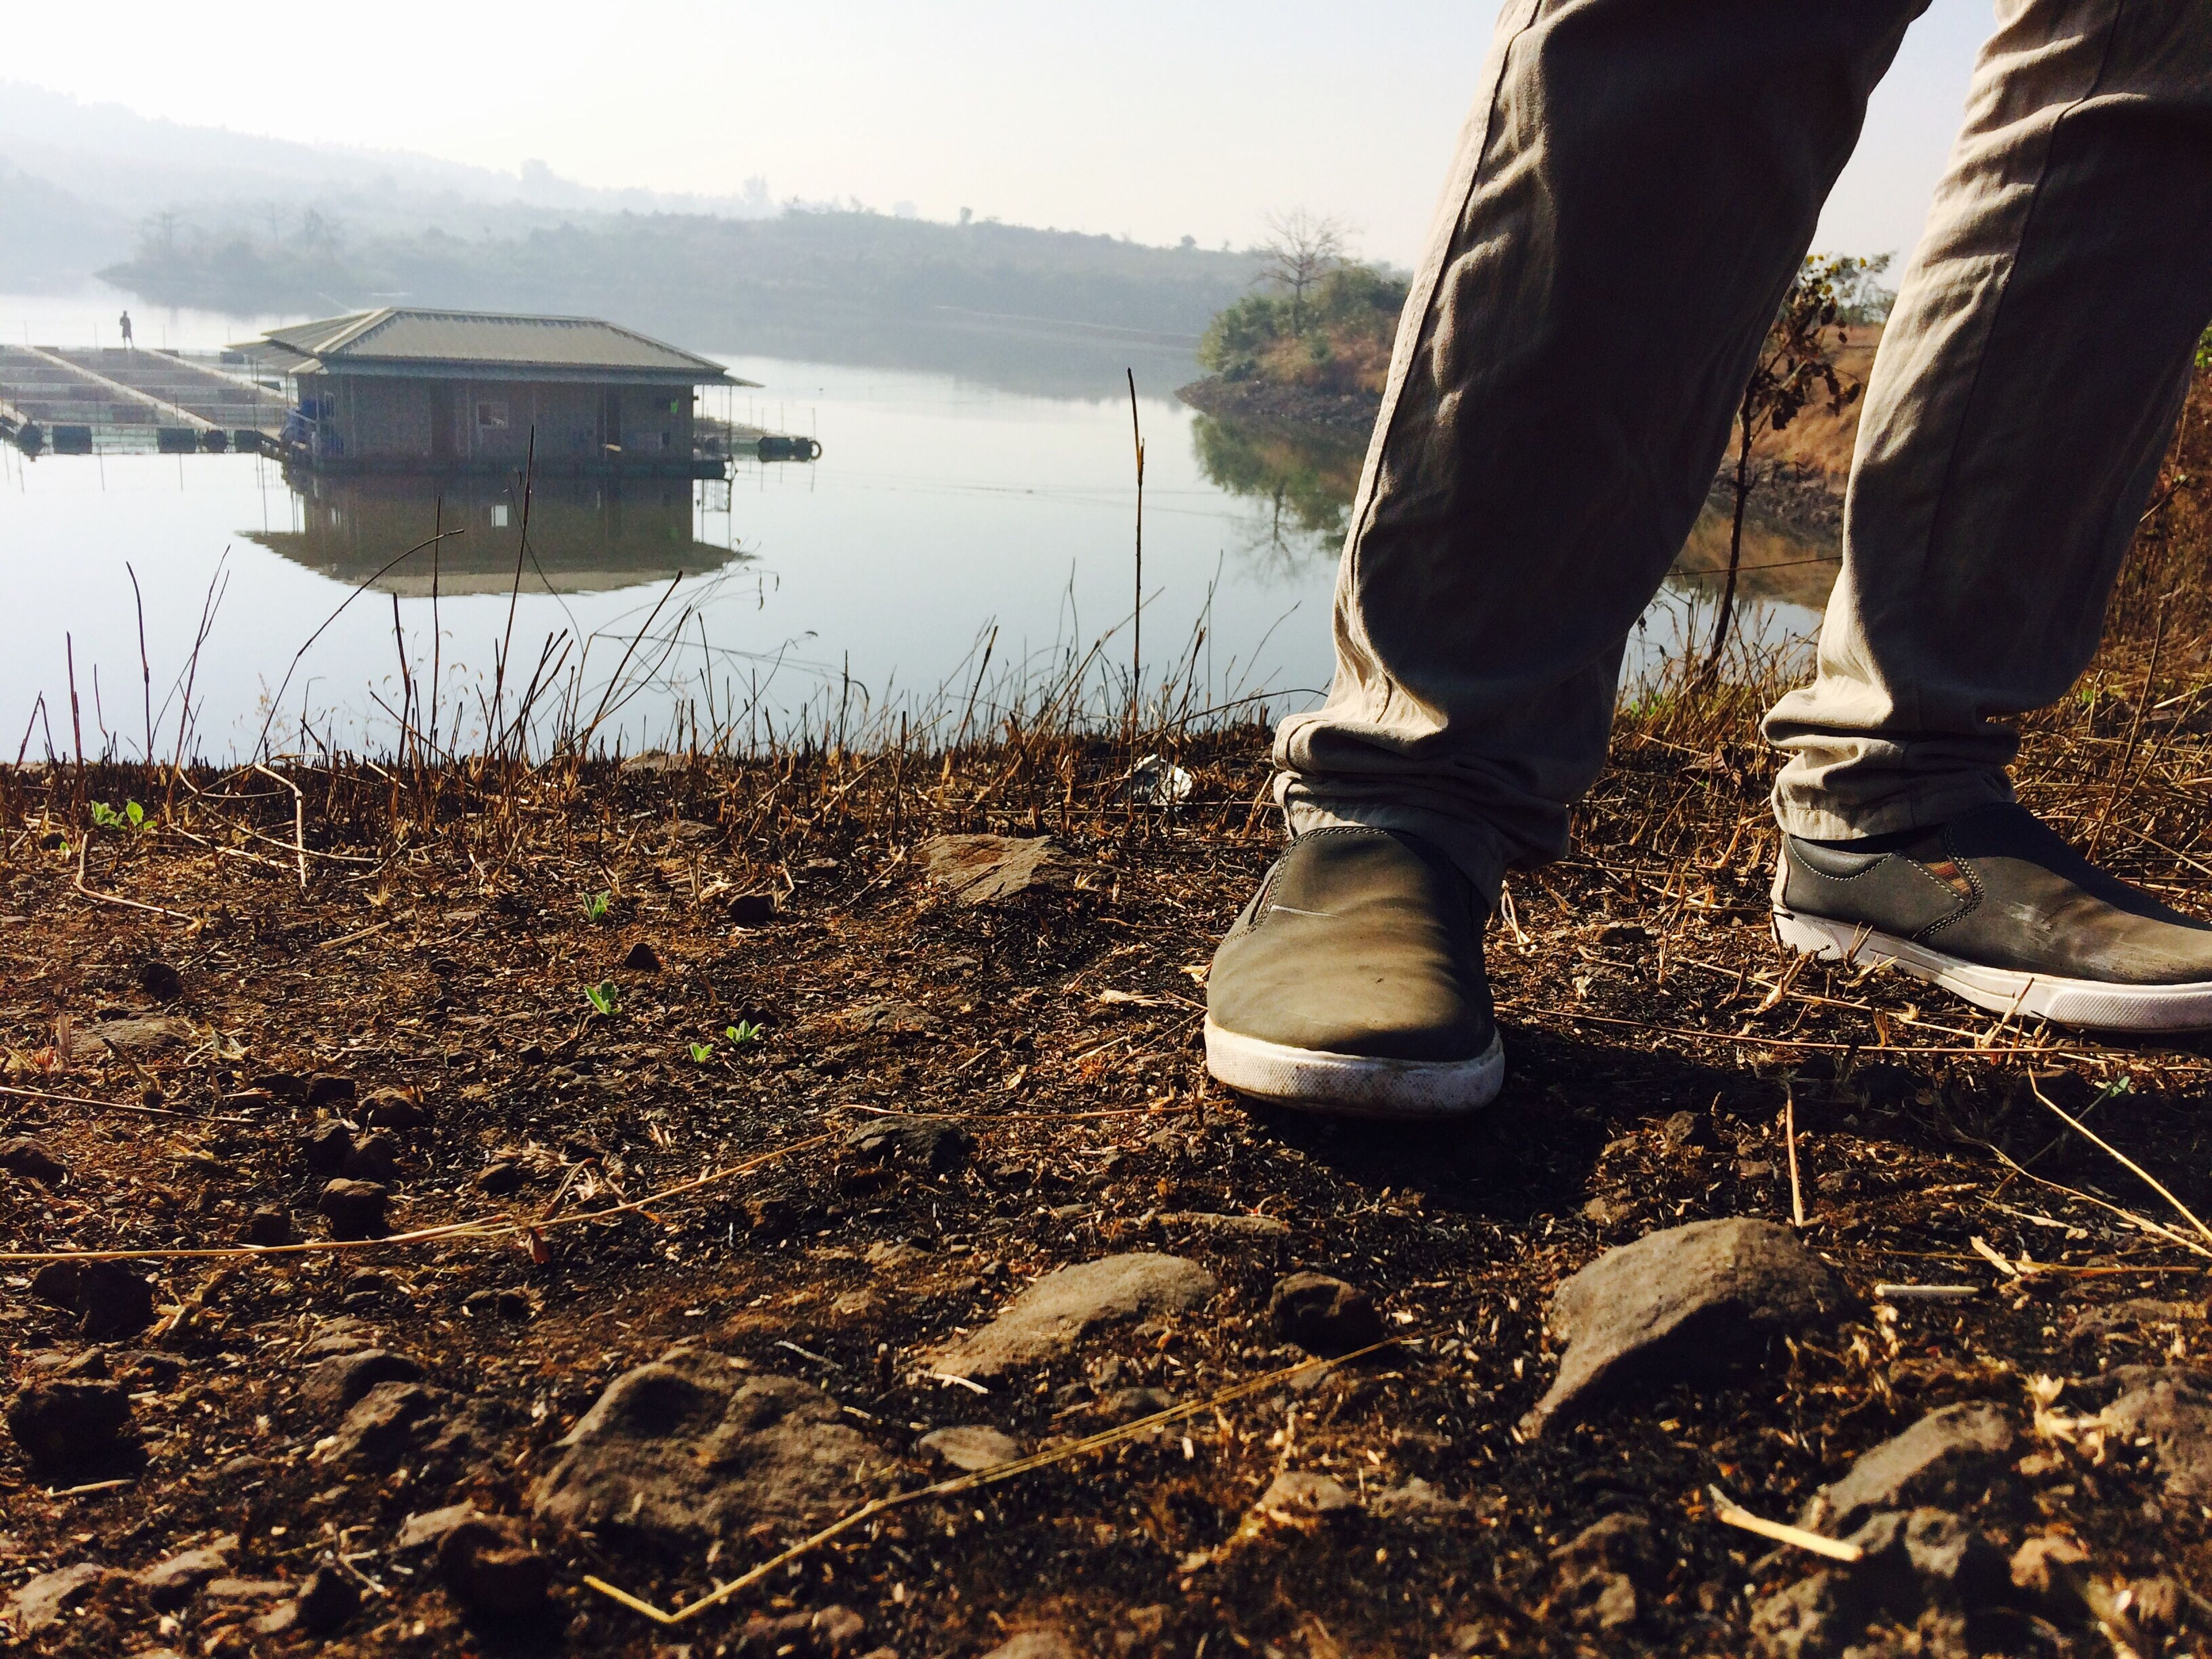 Water Low Section Real People Lifestyles Casual Clothing Human Body Part Shoe One Person Outdoors Human Leg Day Sky Nature People